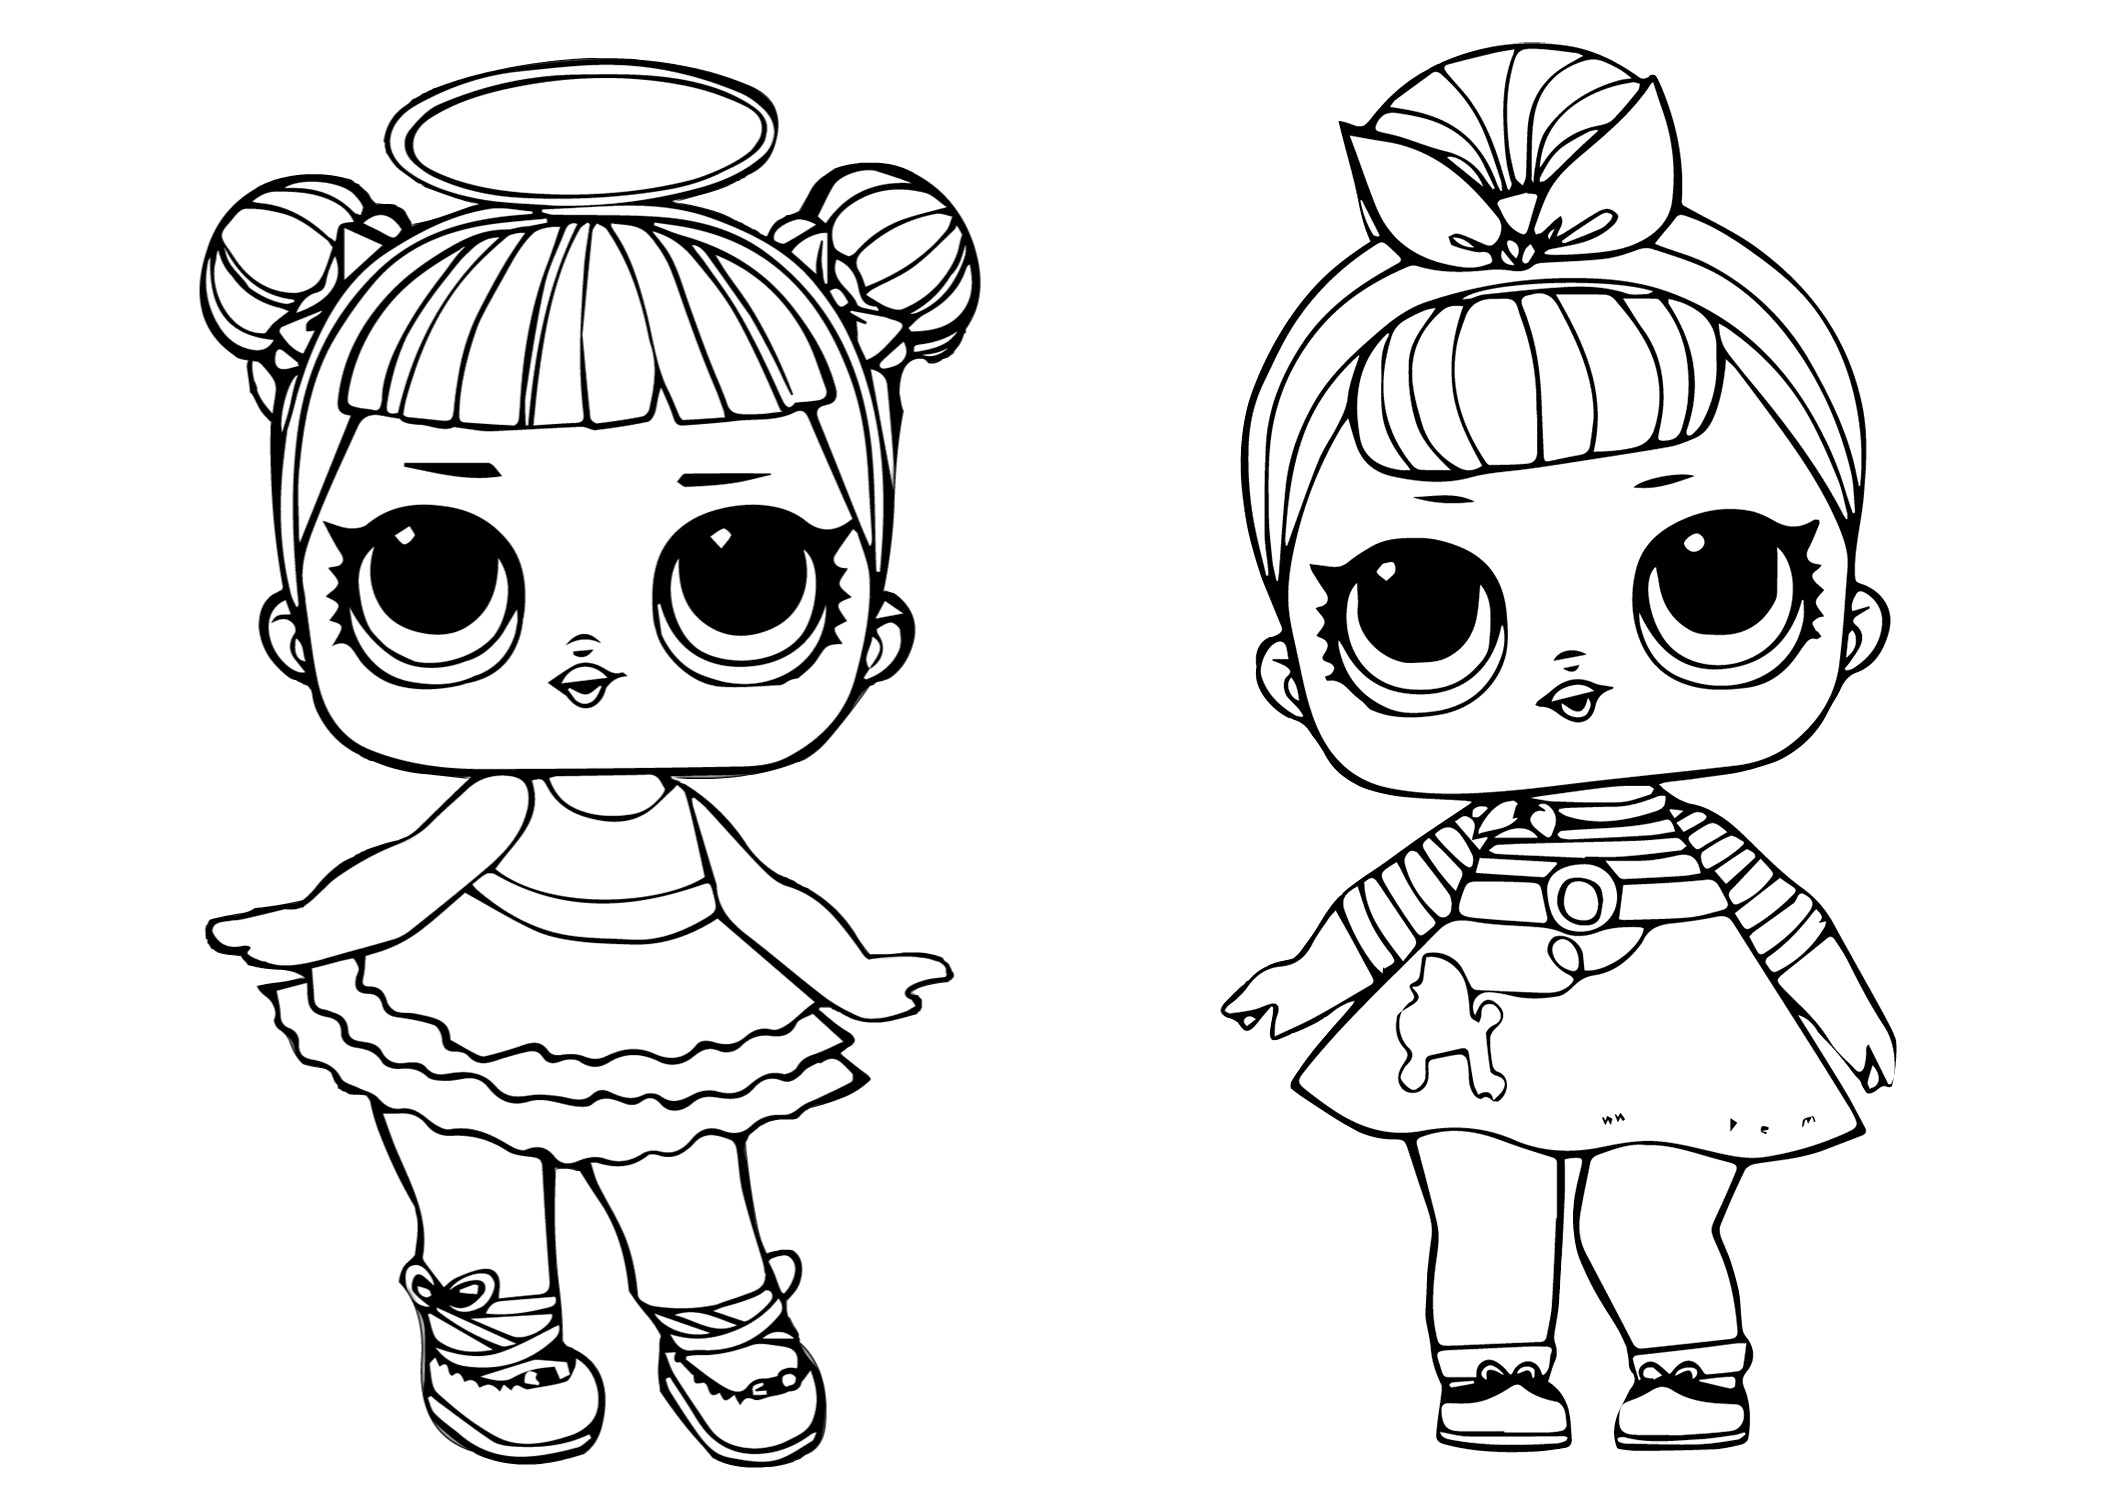 LOL Sugar Doll and Sis Swing Doll Coloring Pages